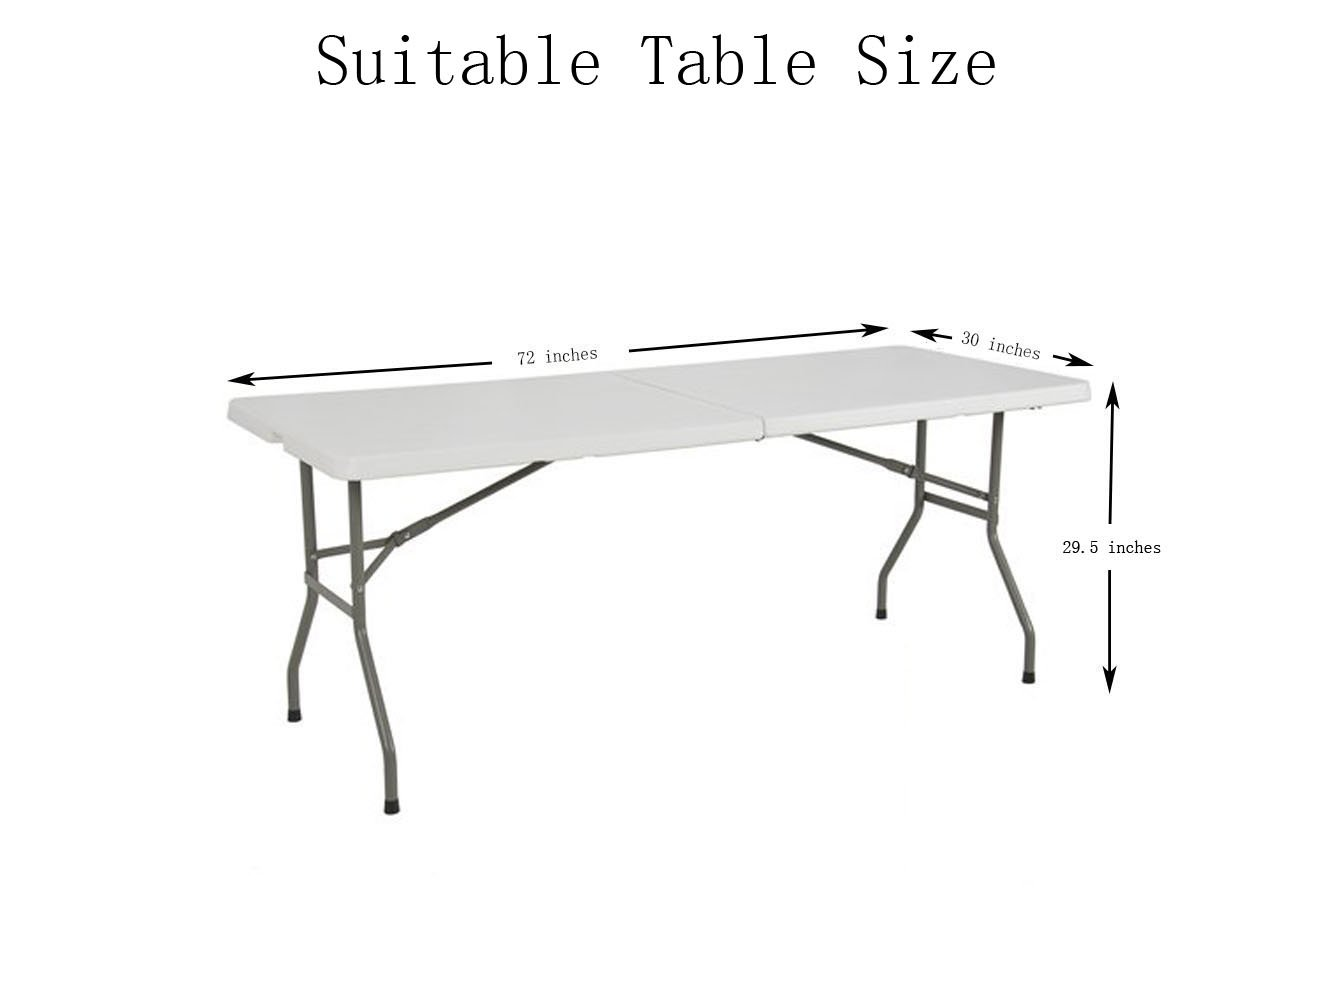 Tina 6' ft Polyester Fitted Tablecloth Table Skirt for Wedding Banquet Trade Show Black by Tina's (Image #2)